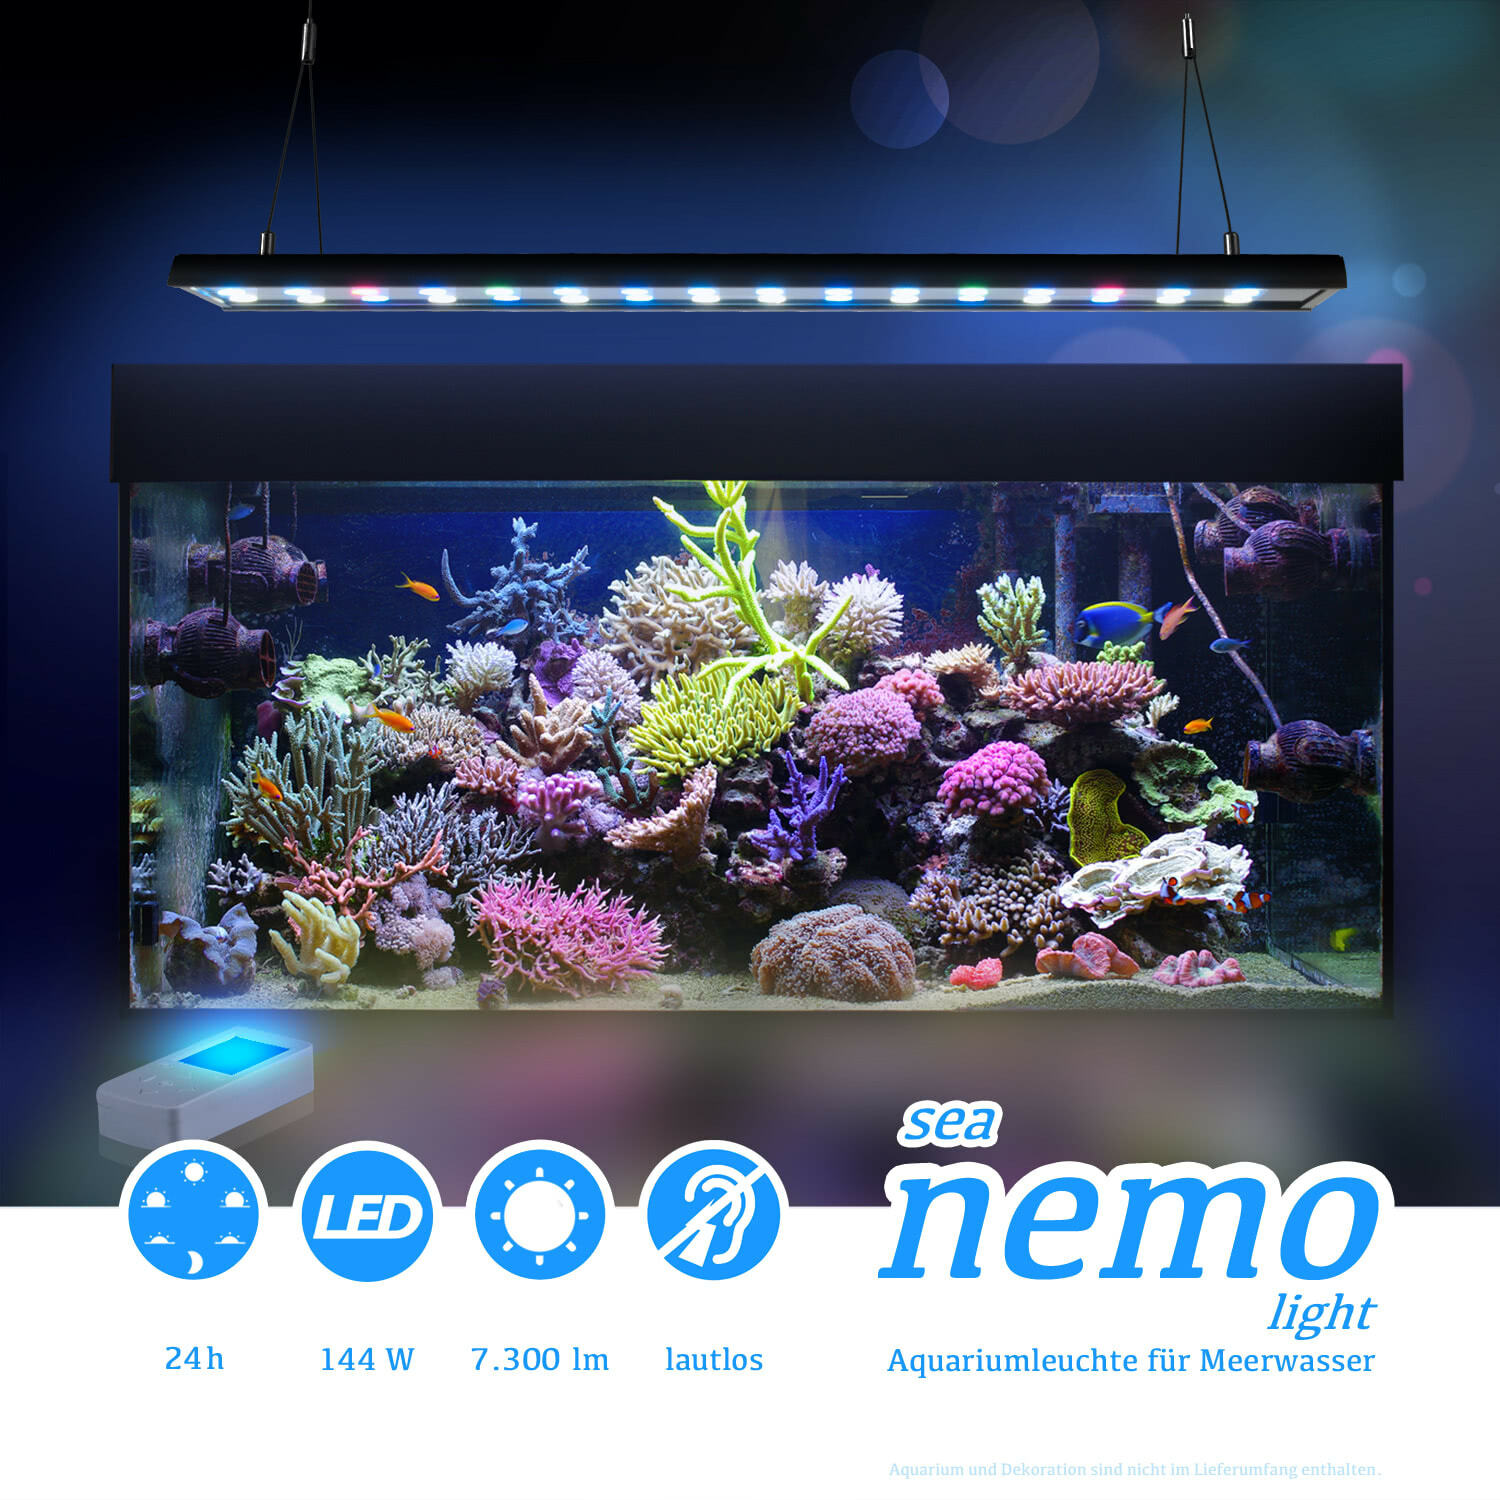 esmart germany sea nemo 2 led meerwasser aquarium korallen beleuchtung lampe ebay. Black Bedroom Furniture Sets. Home Design Ideas